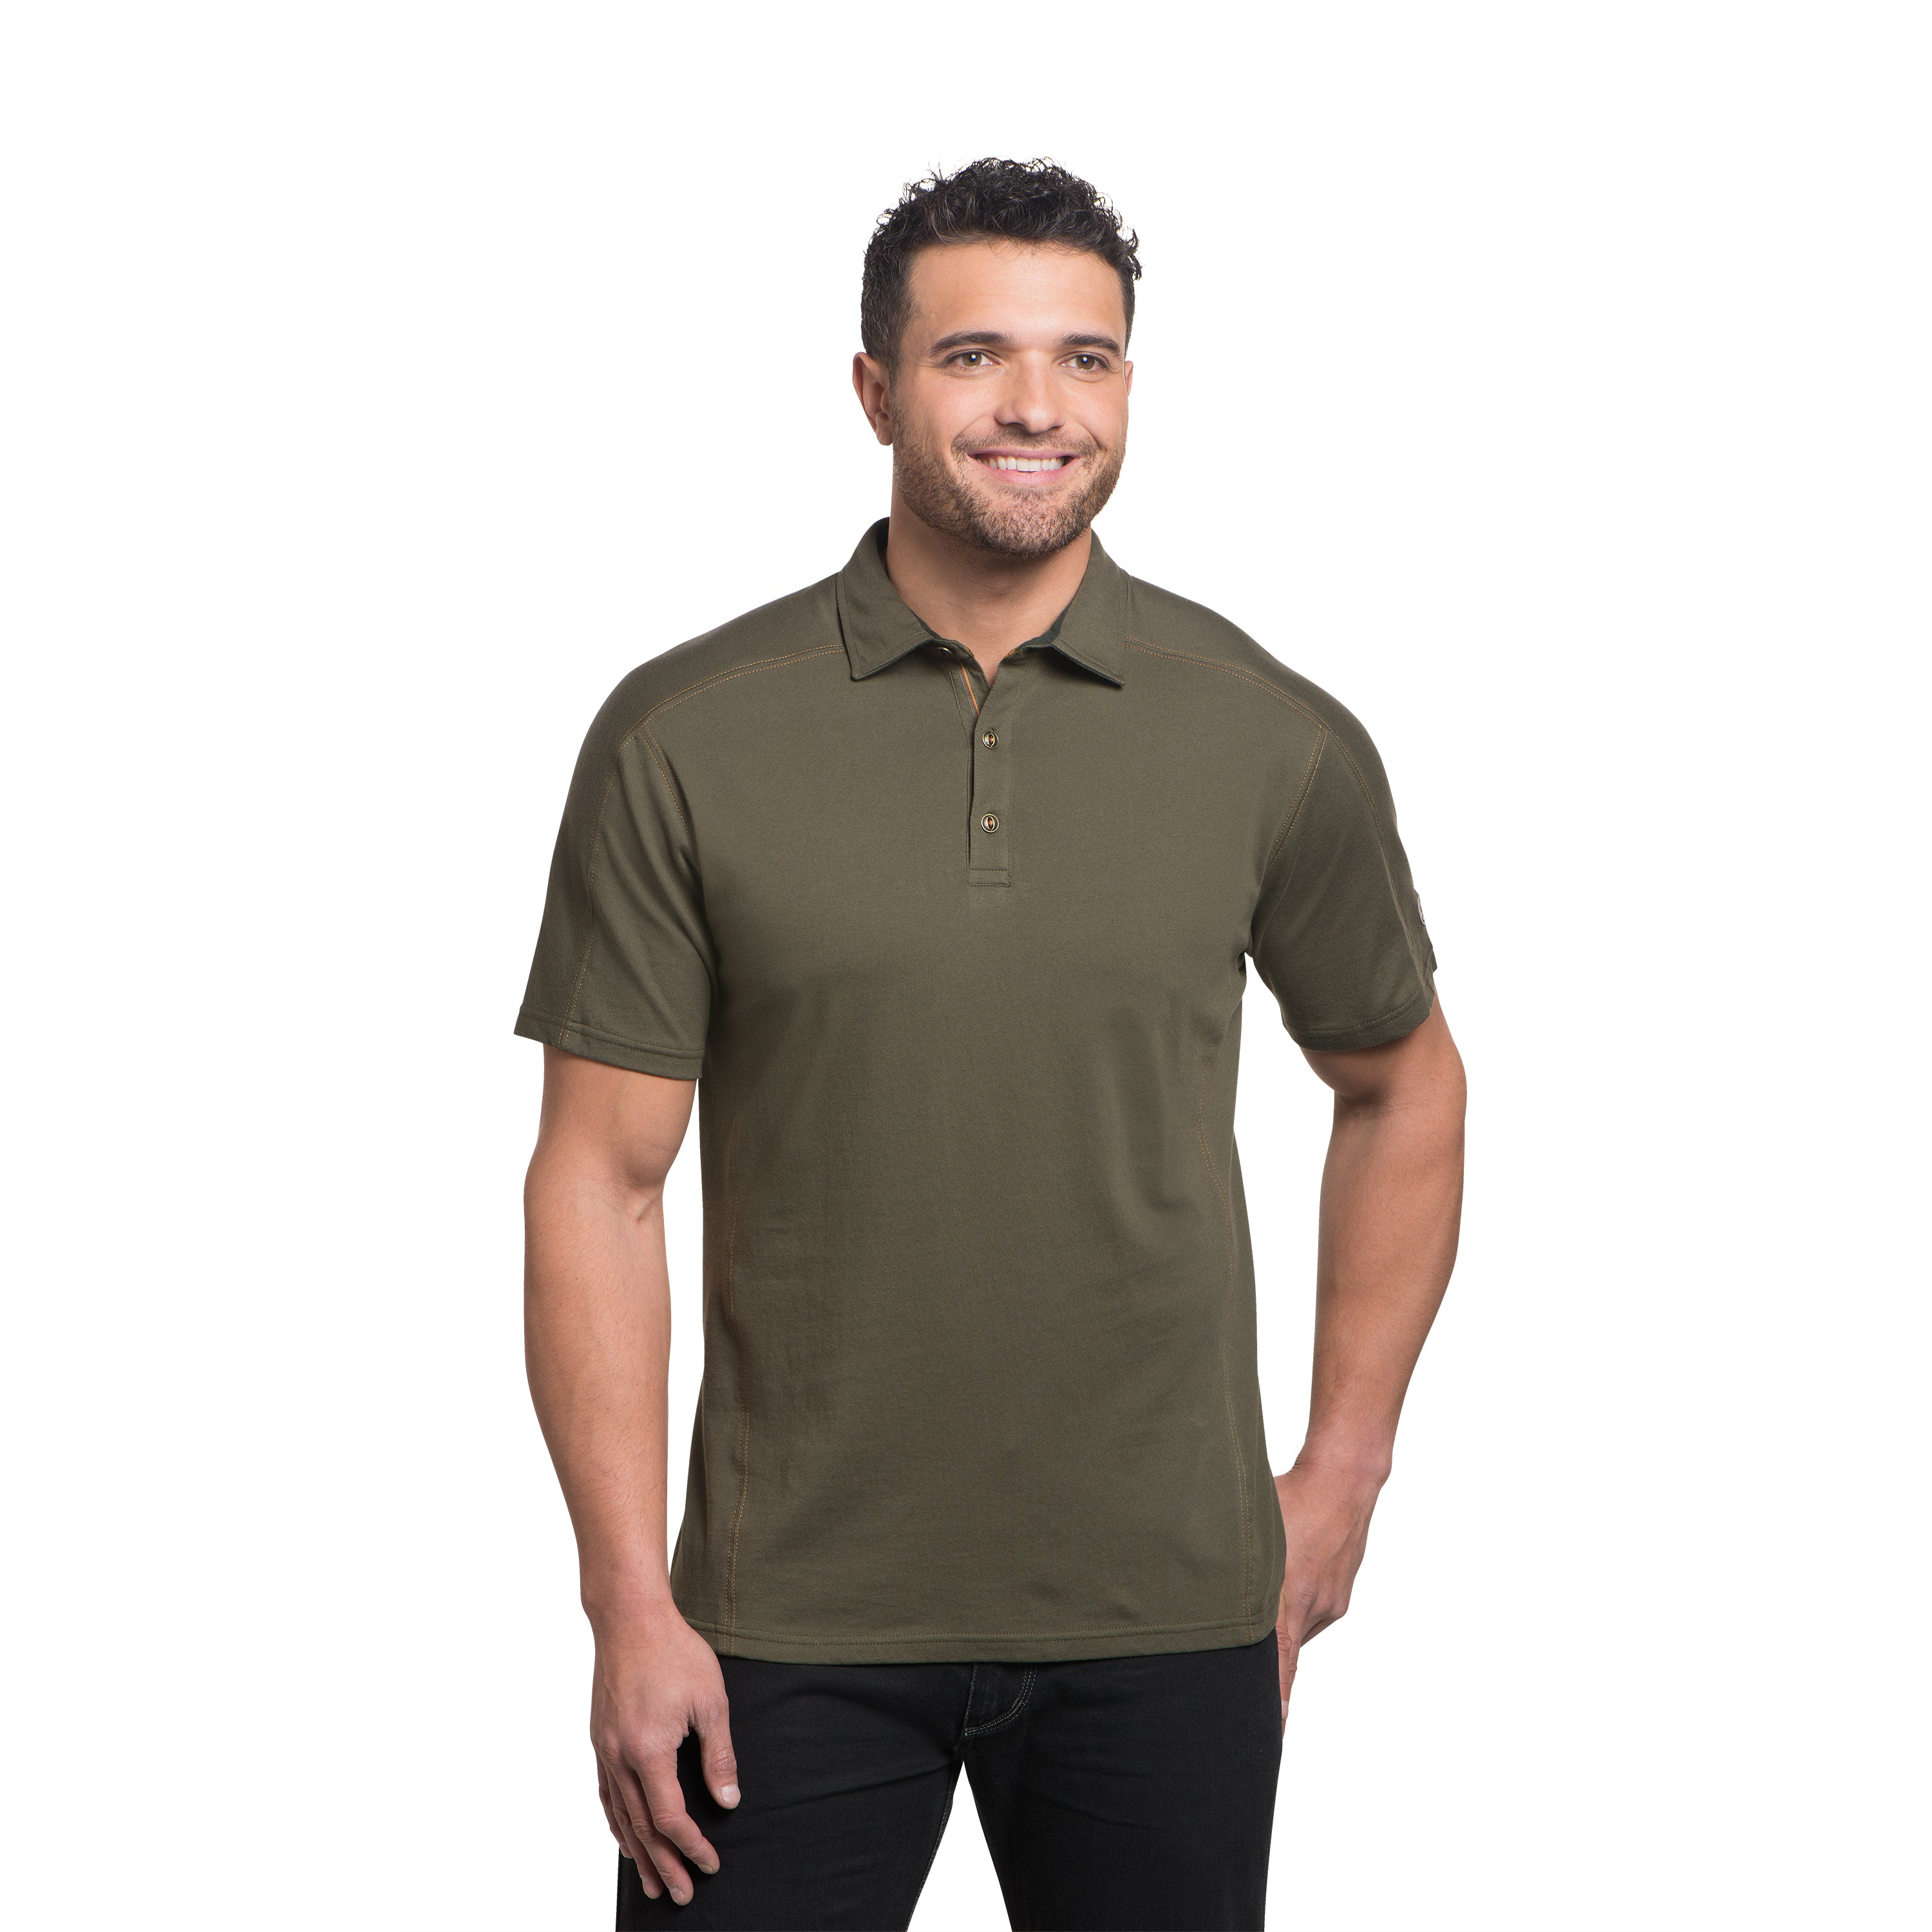 Kuhl Wayfarer Tee for Men in Olive